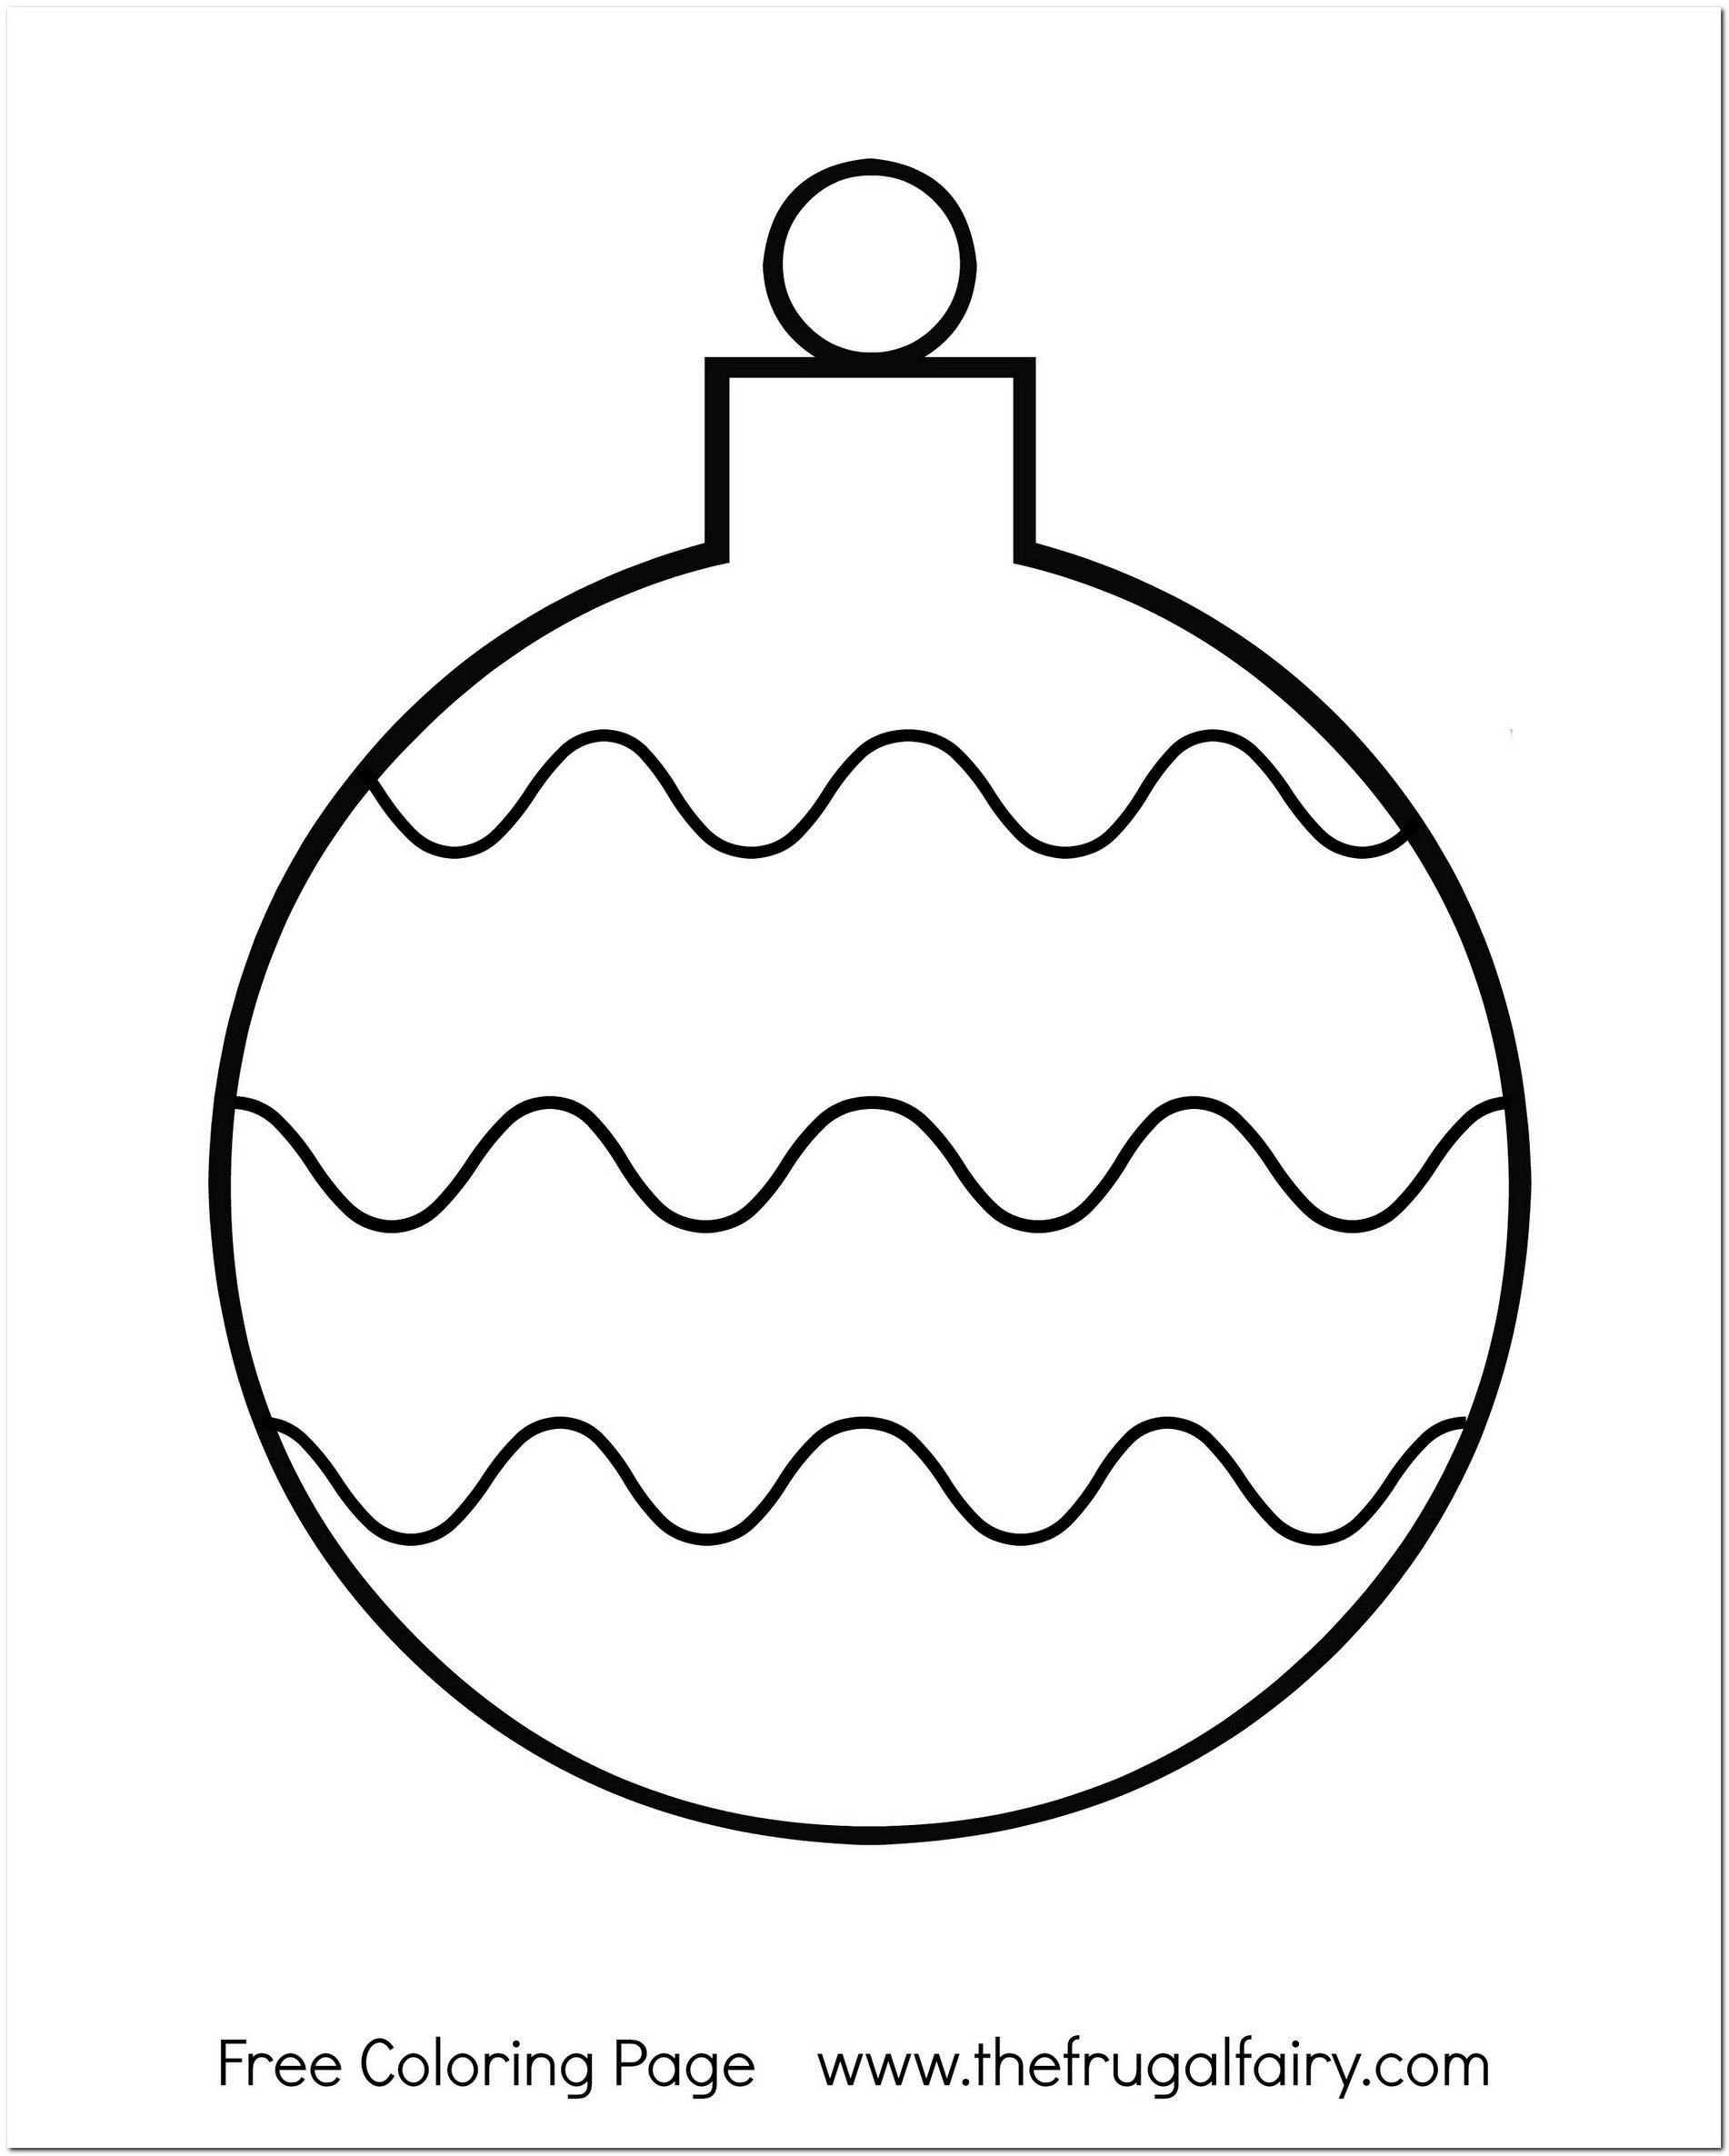 Coloring Page Christmas Ornament Download Free Christmas Coloring Pages Christmas Coloring Pages Printable Christmas Ornaments